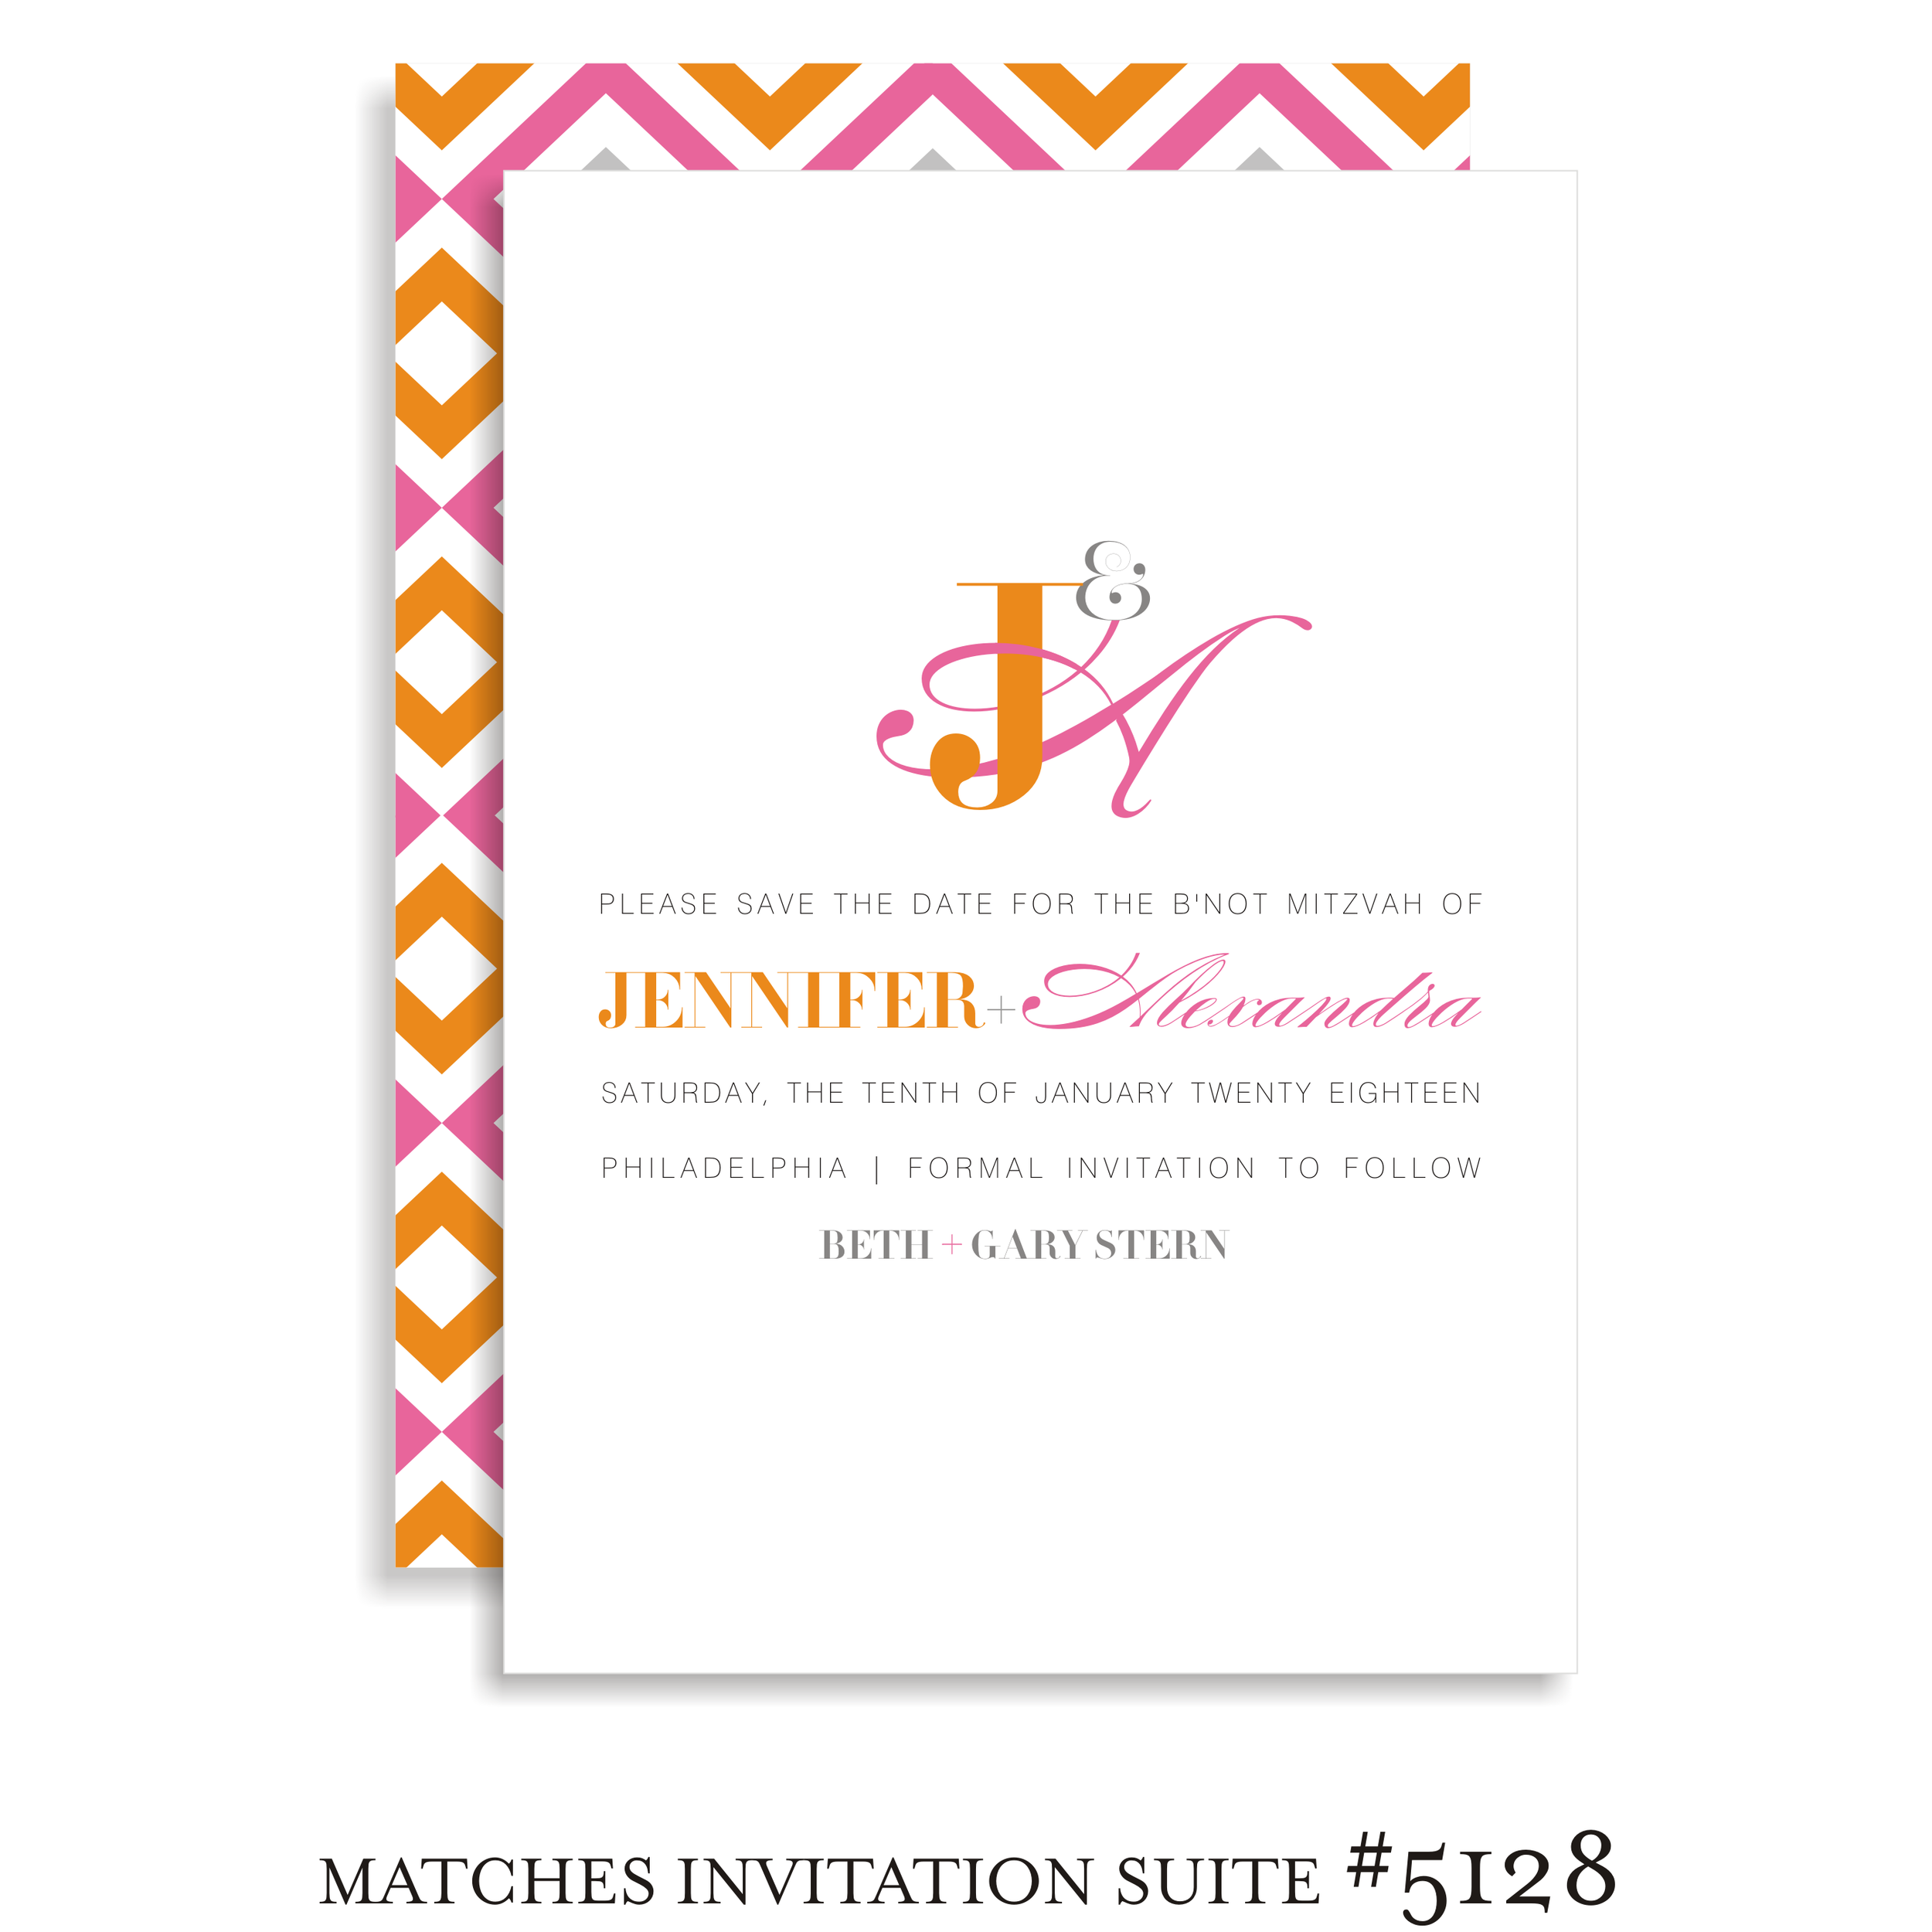 Save the Date B'not Mitzvah Suite 5128 - Jennifer & Alexandra